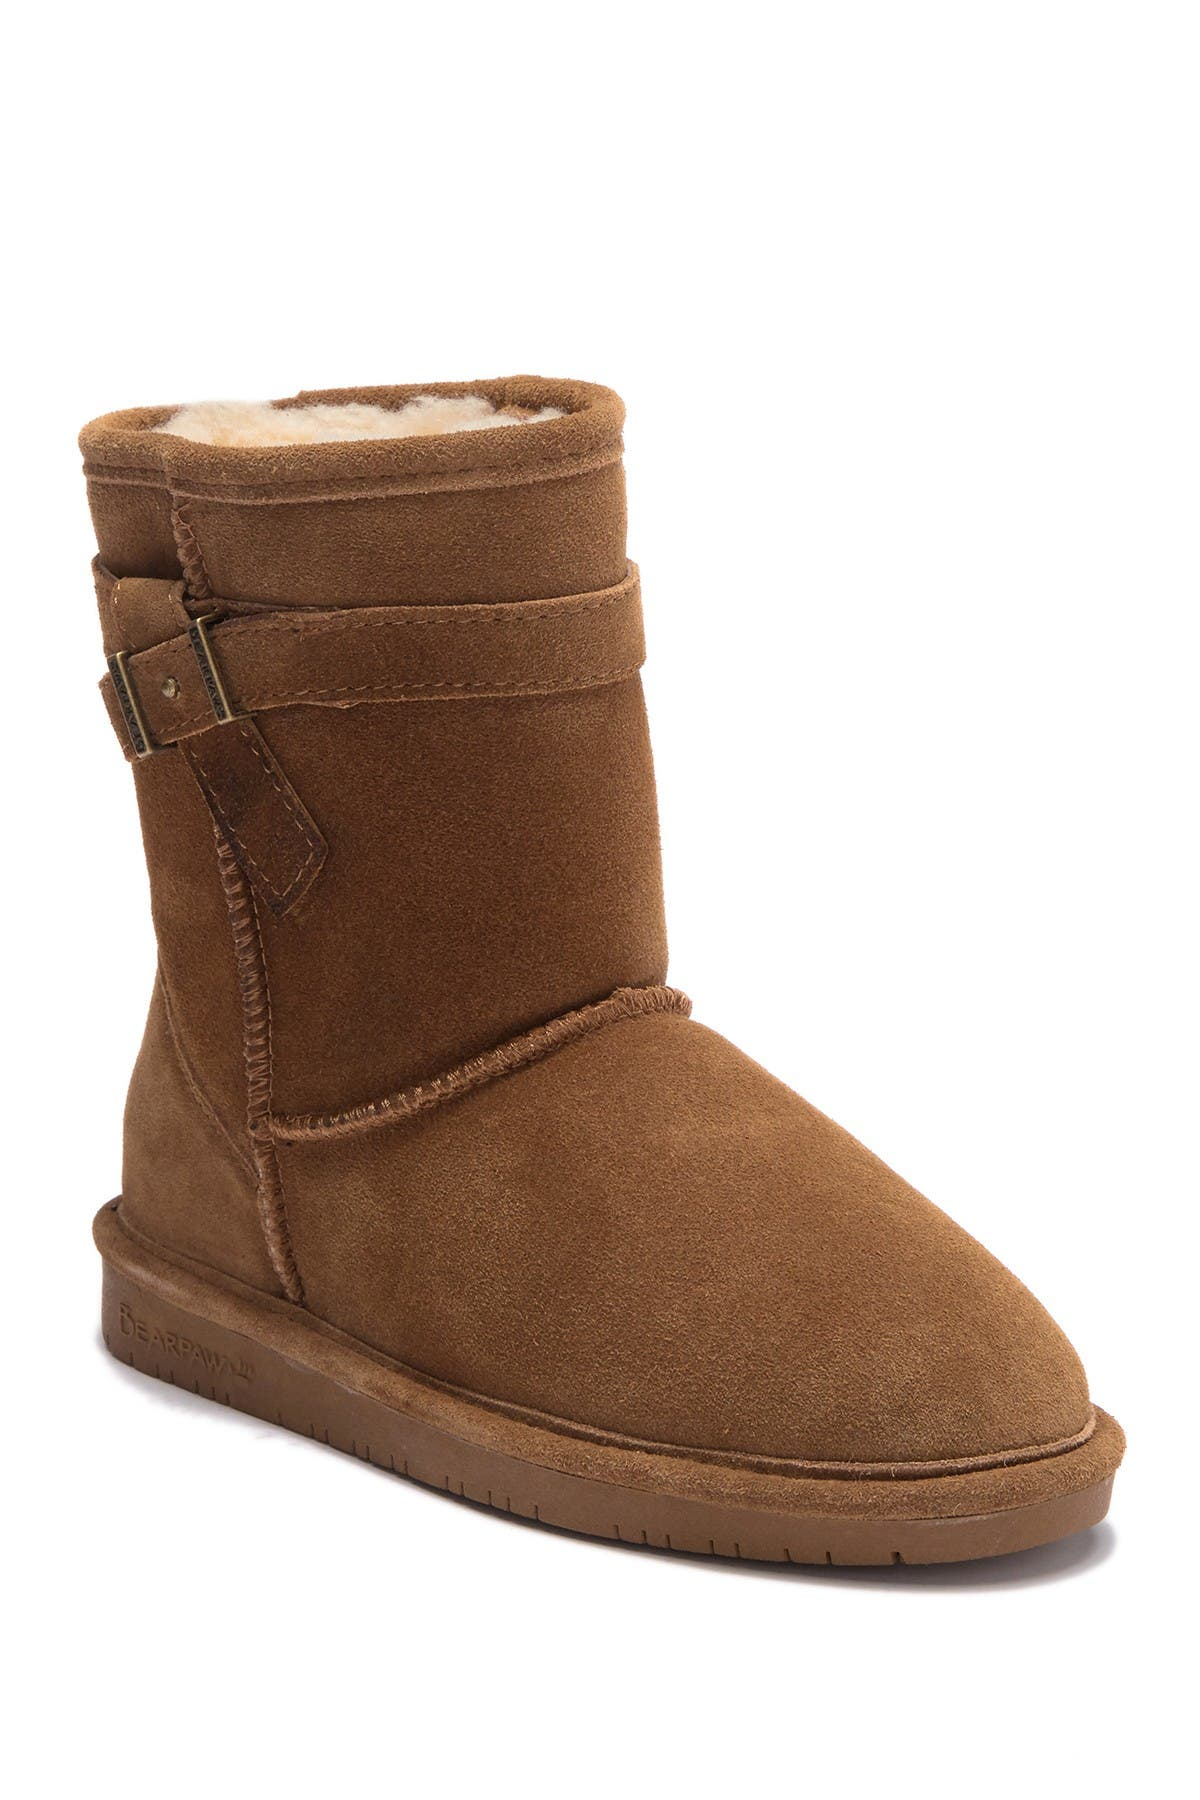 Image of BEARPAW Val Youth Suede Genuine Sheepskin Boot